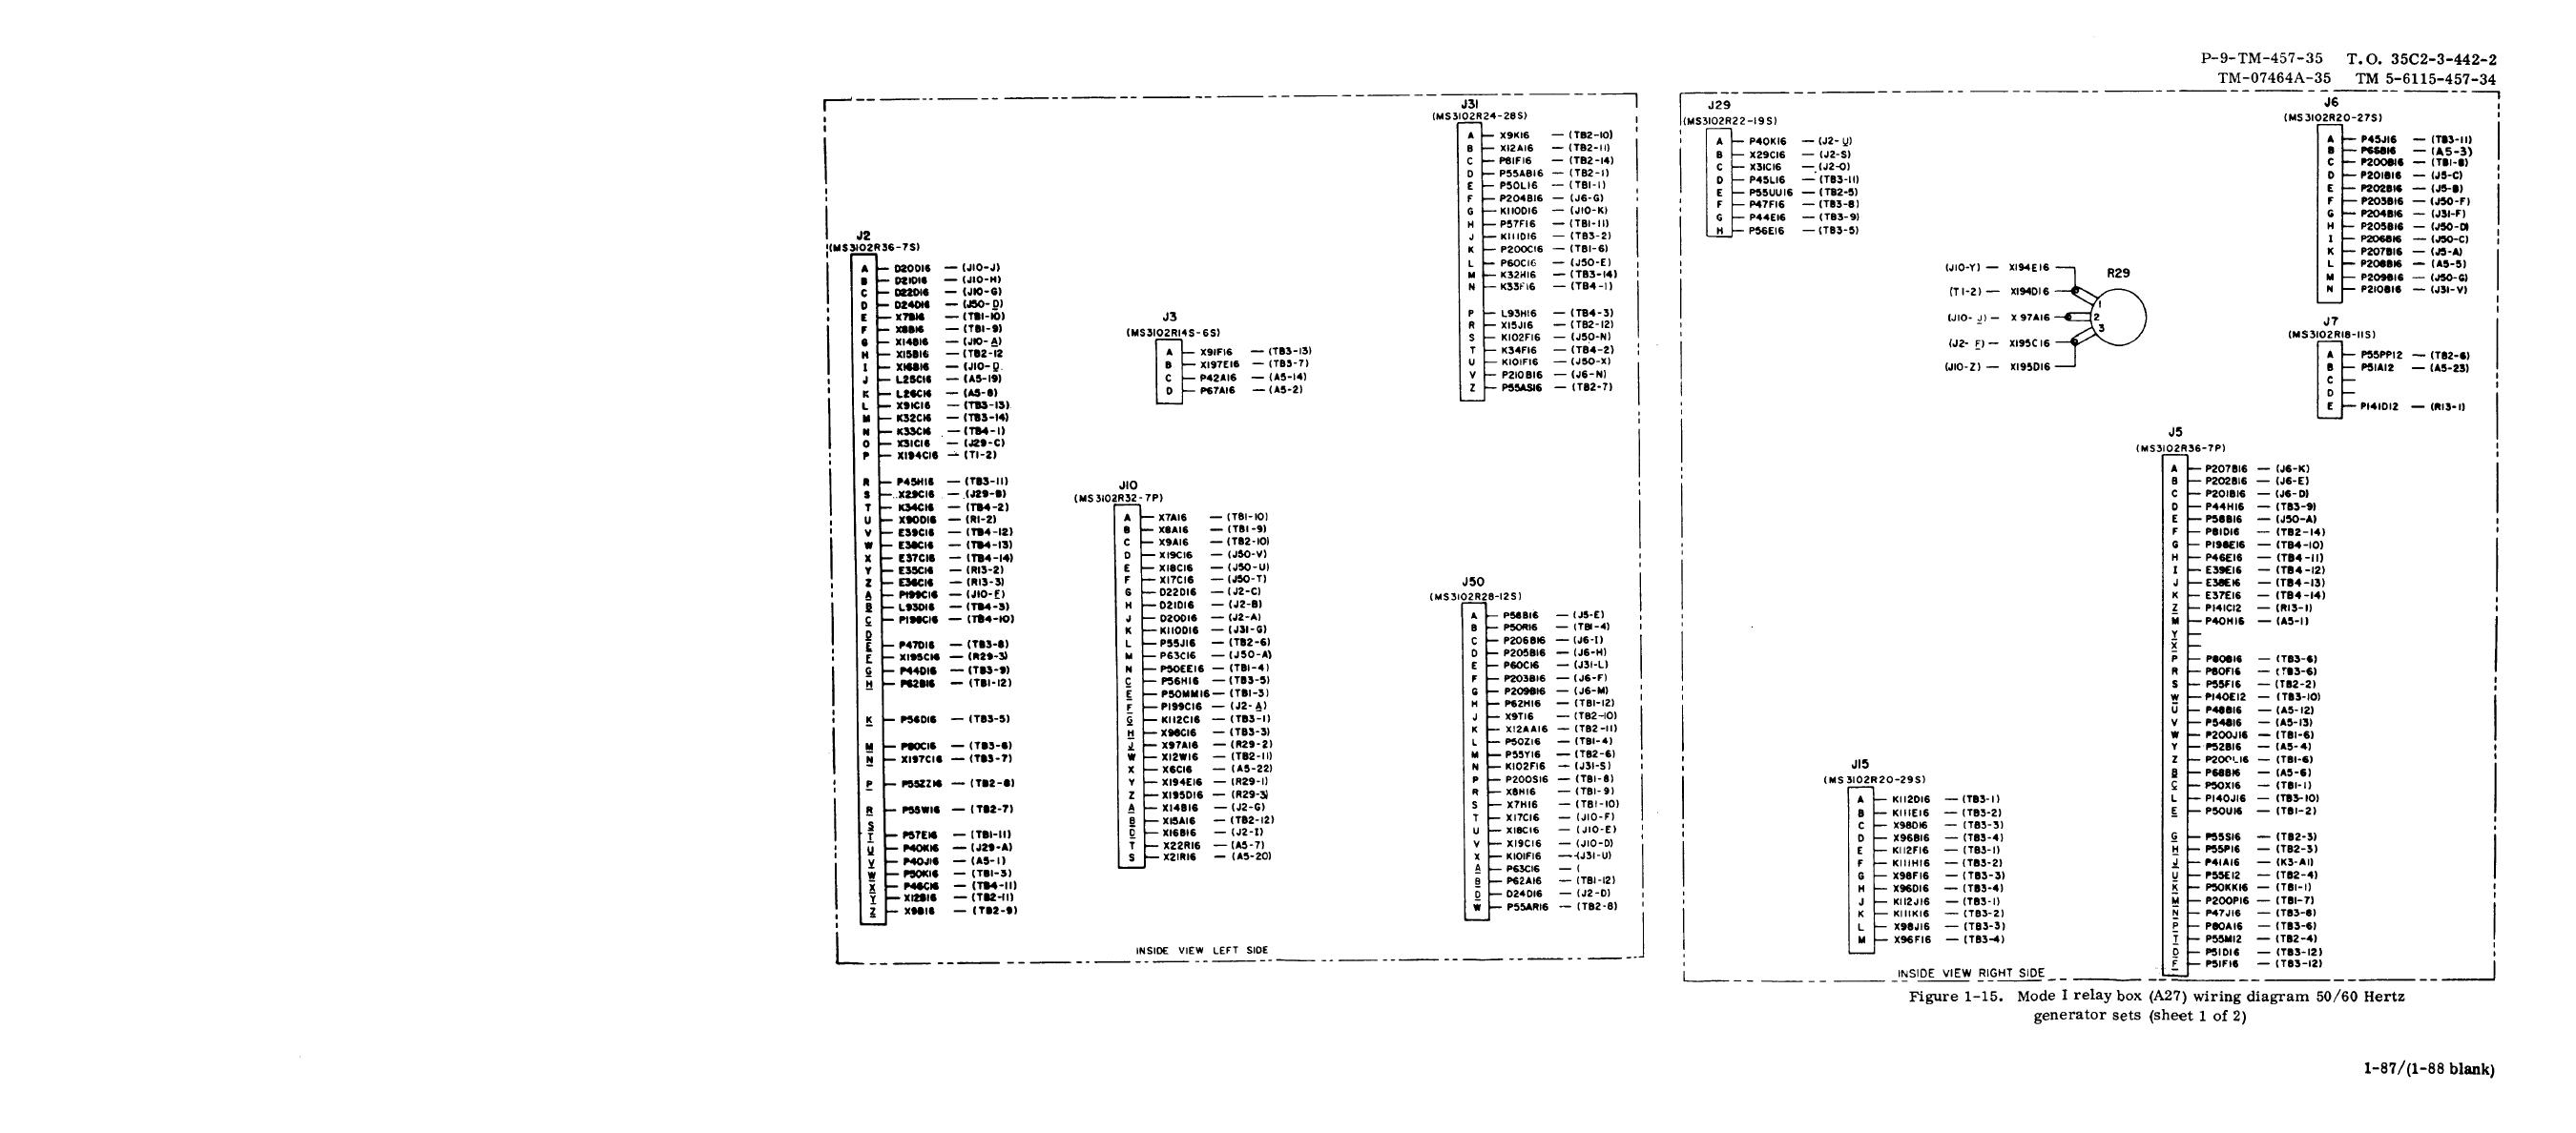 Figure 1 15 Mode I Relay Box A27 Wiring Diagram 50 60 Hertz 91 K 5 Diagrams Tm 6115 457 34 Generator Set Diesel Engine Driven Tactical Skid Mtd 100 Kw 3 Phase 4 Wire 120 208 And 240 416 Volts Manual Page Navigation